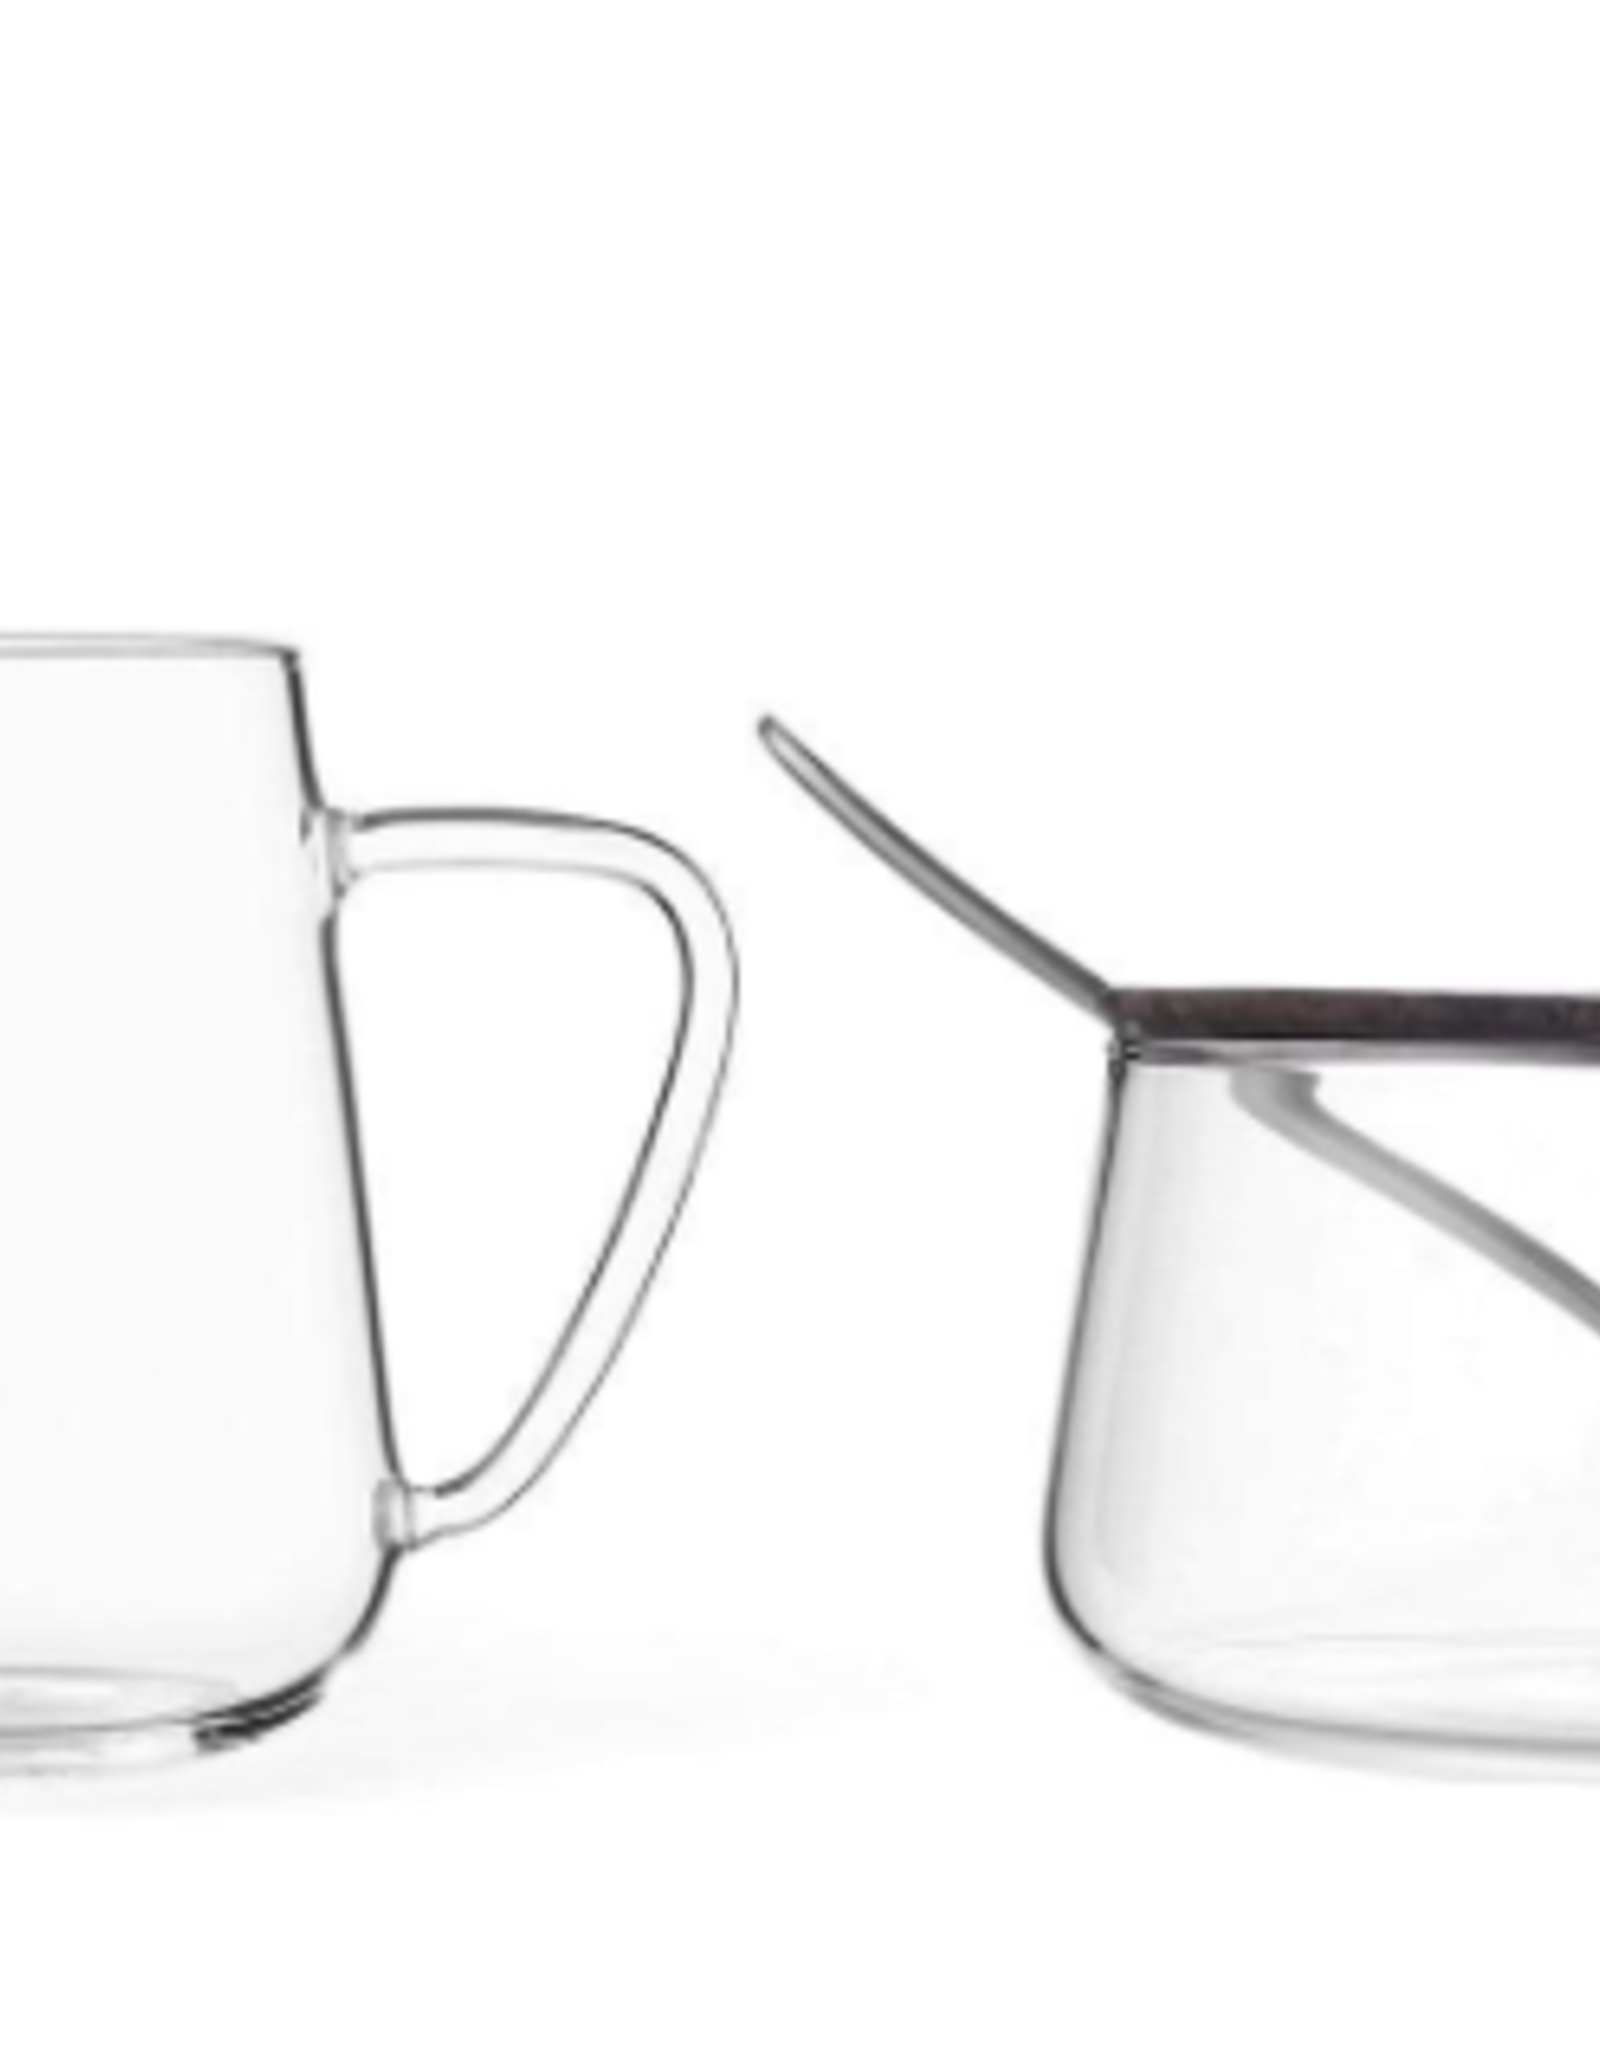 Milk and Sugar Set, Classic